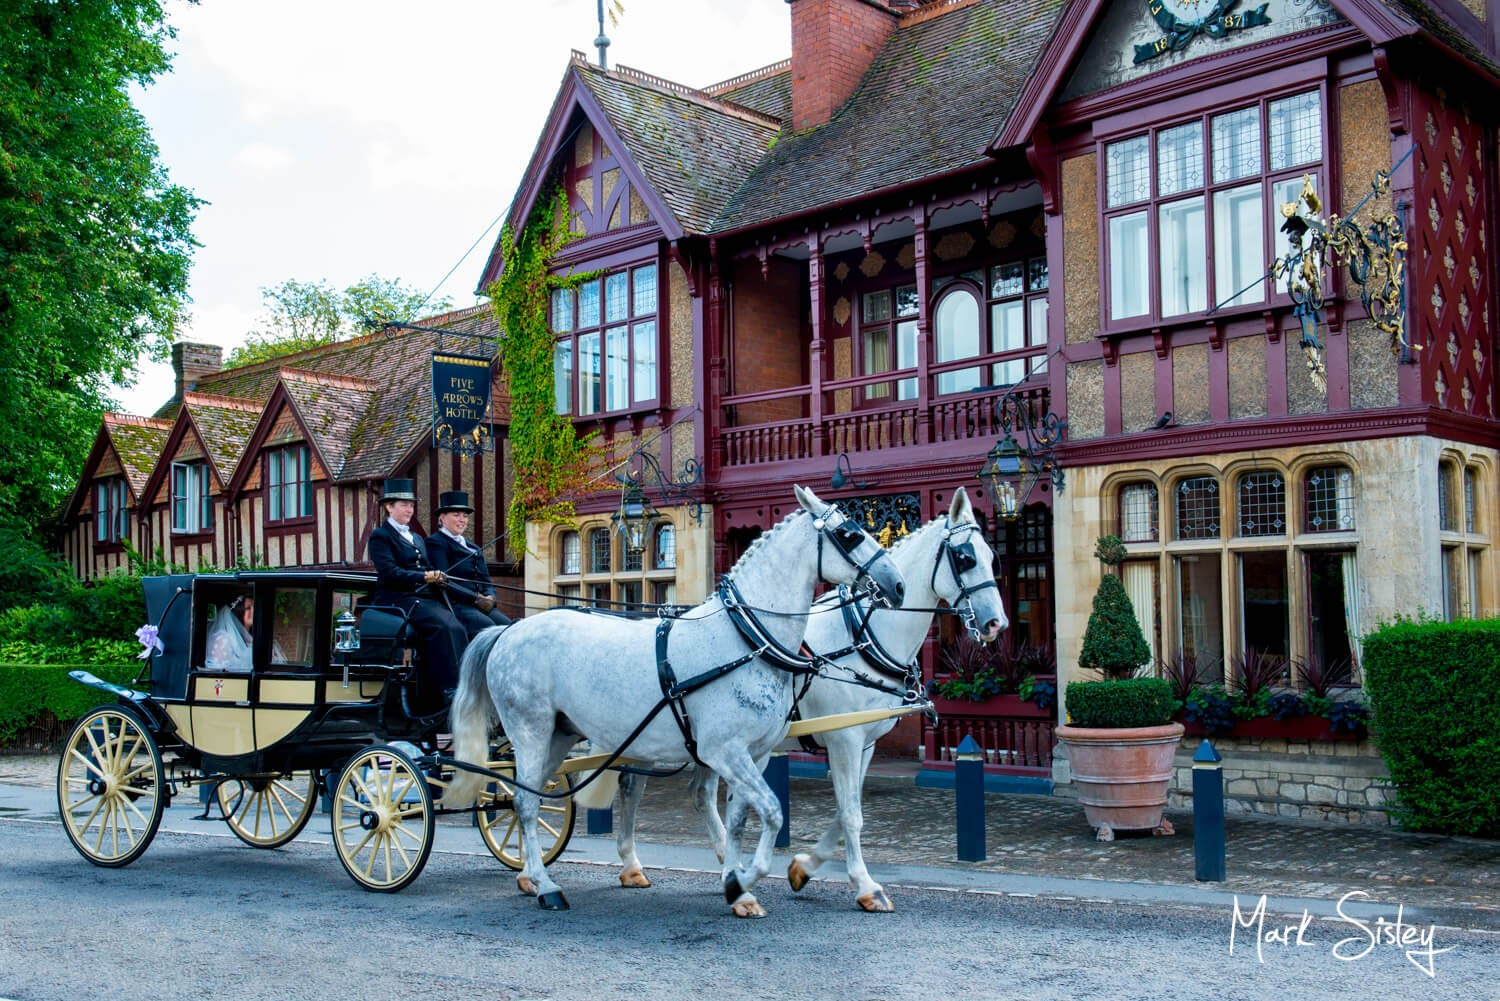 Dairy Waddesdon wedding photos of horses and carriage passing The Five Arrows Hotel in the village